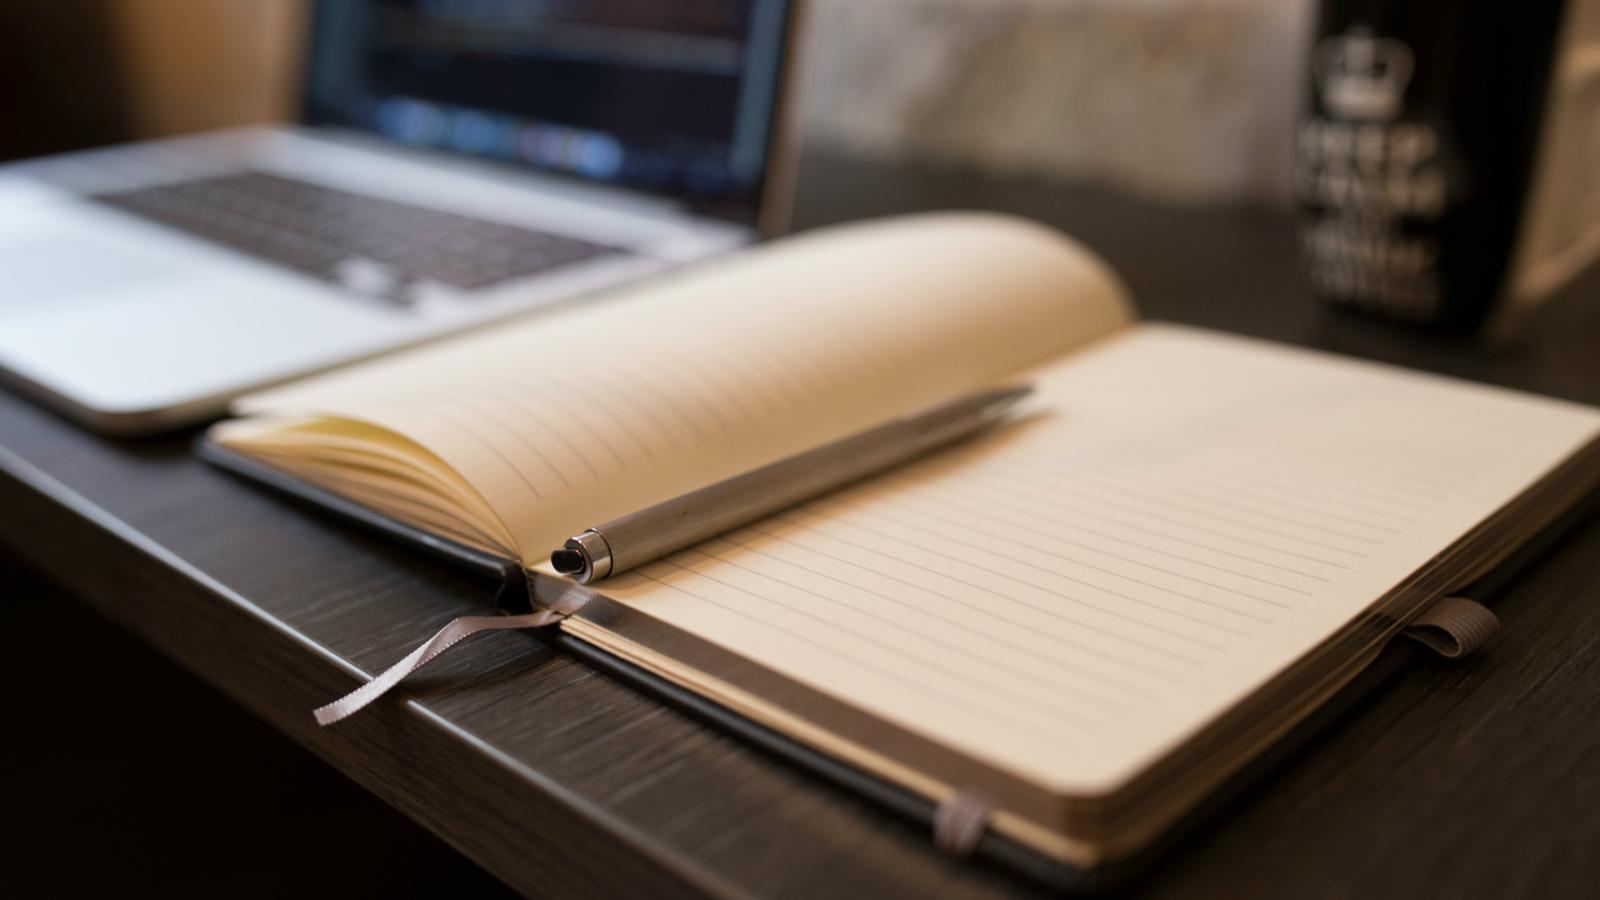 To-do lists can become a stressful burden